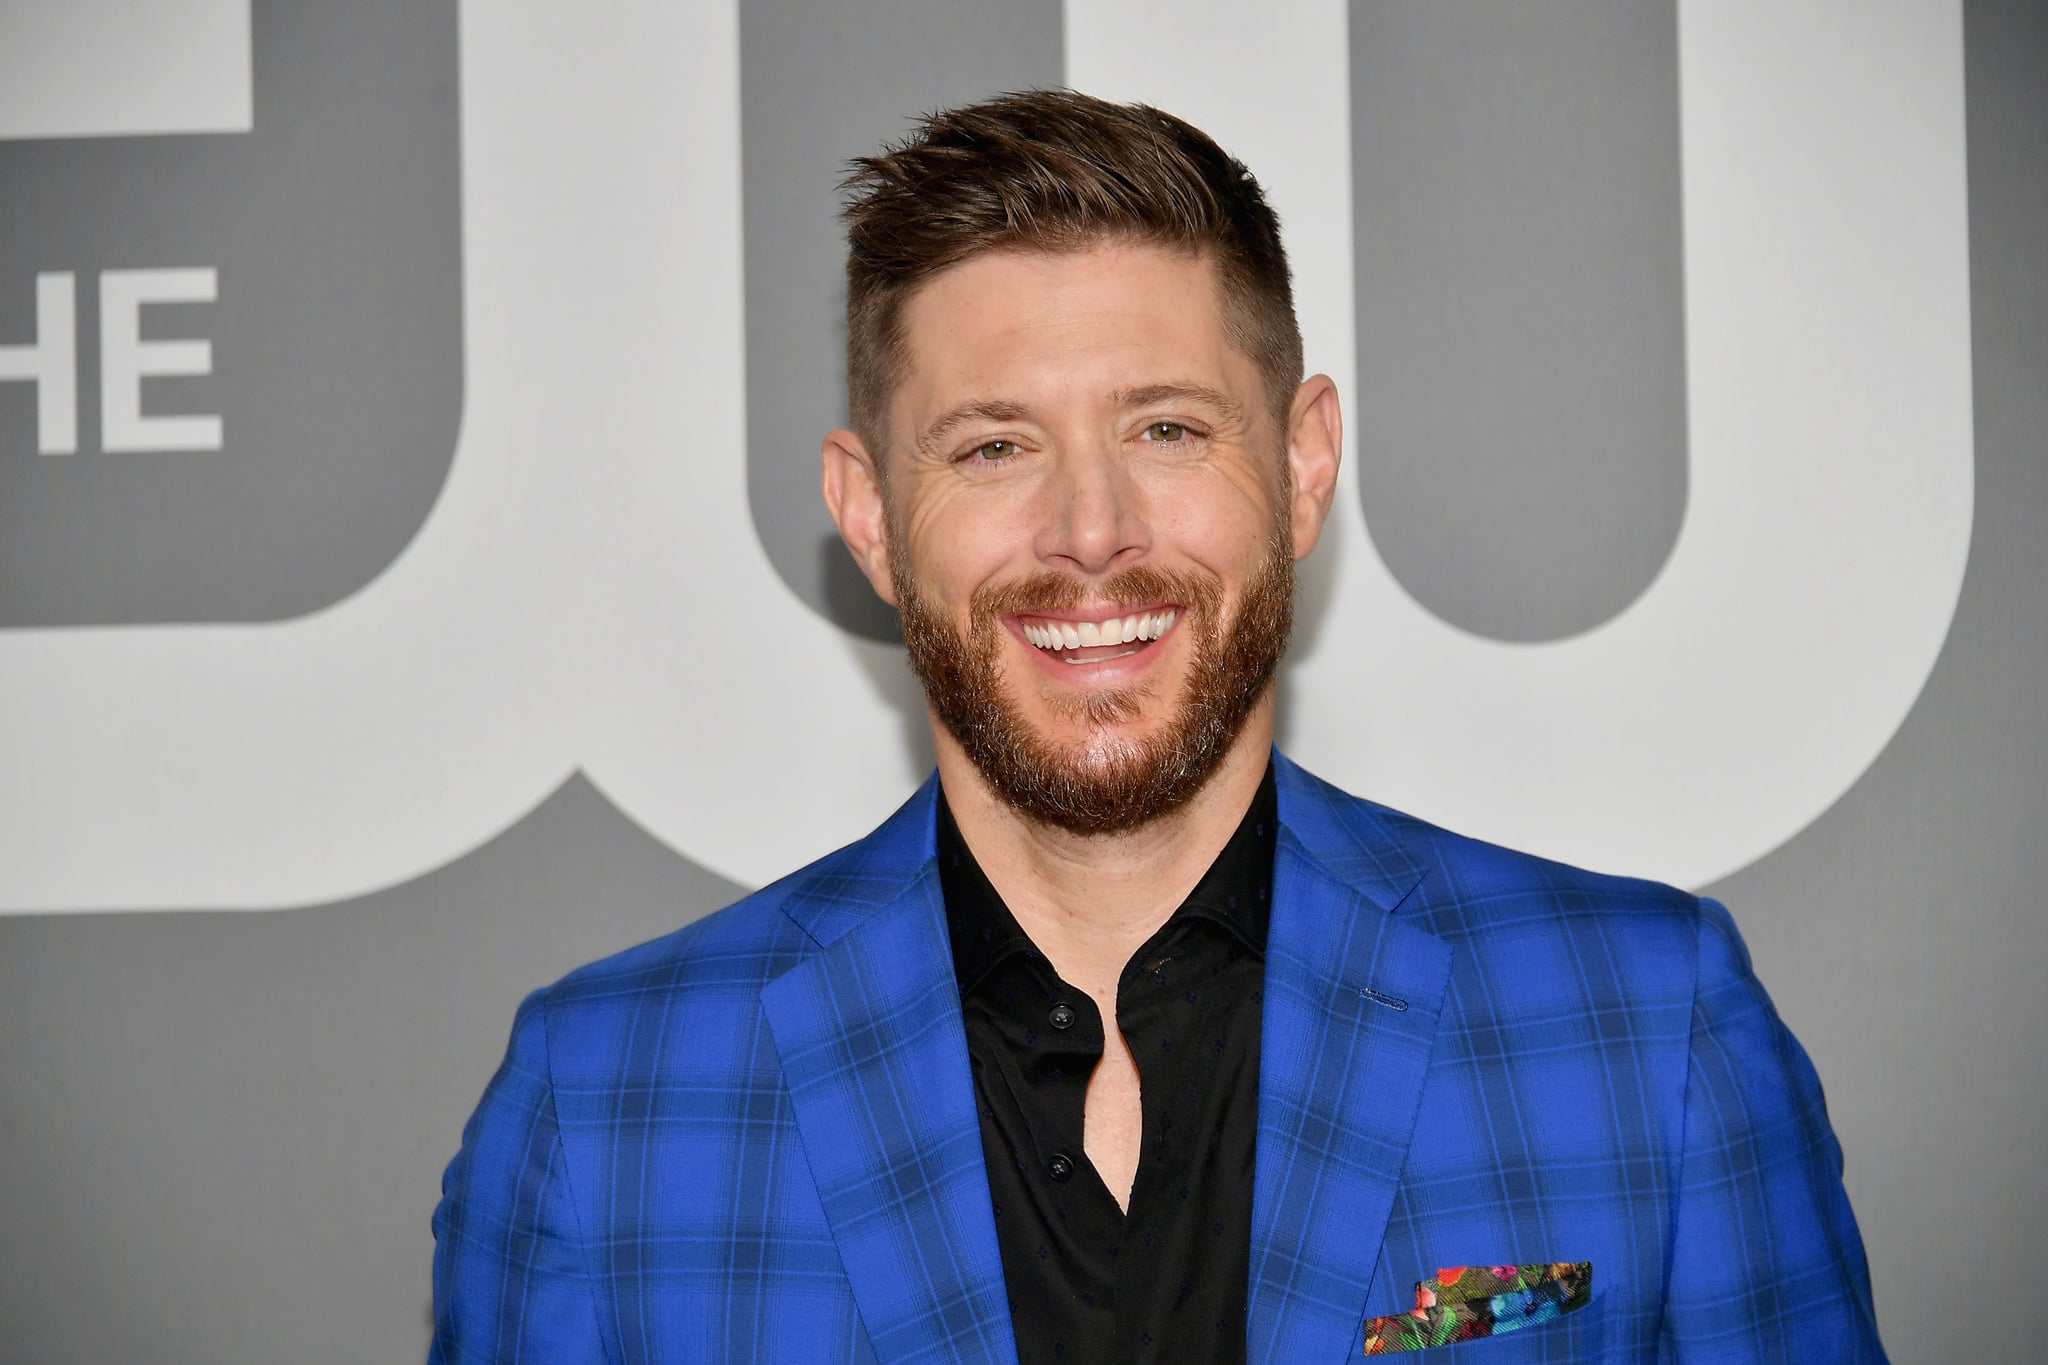 NEW YORK, NY - MAY 16:  Jensen Ackles attends the 2019 CW Network Upfront at New York City Centre on May 16, 2019 in New York City.  (Photo by Dia Dipasupil/Getty Images)